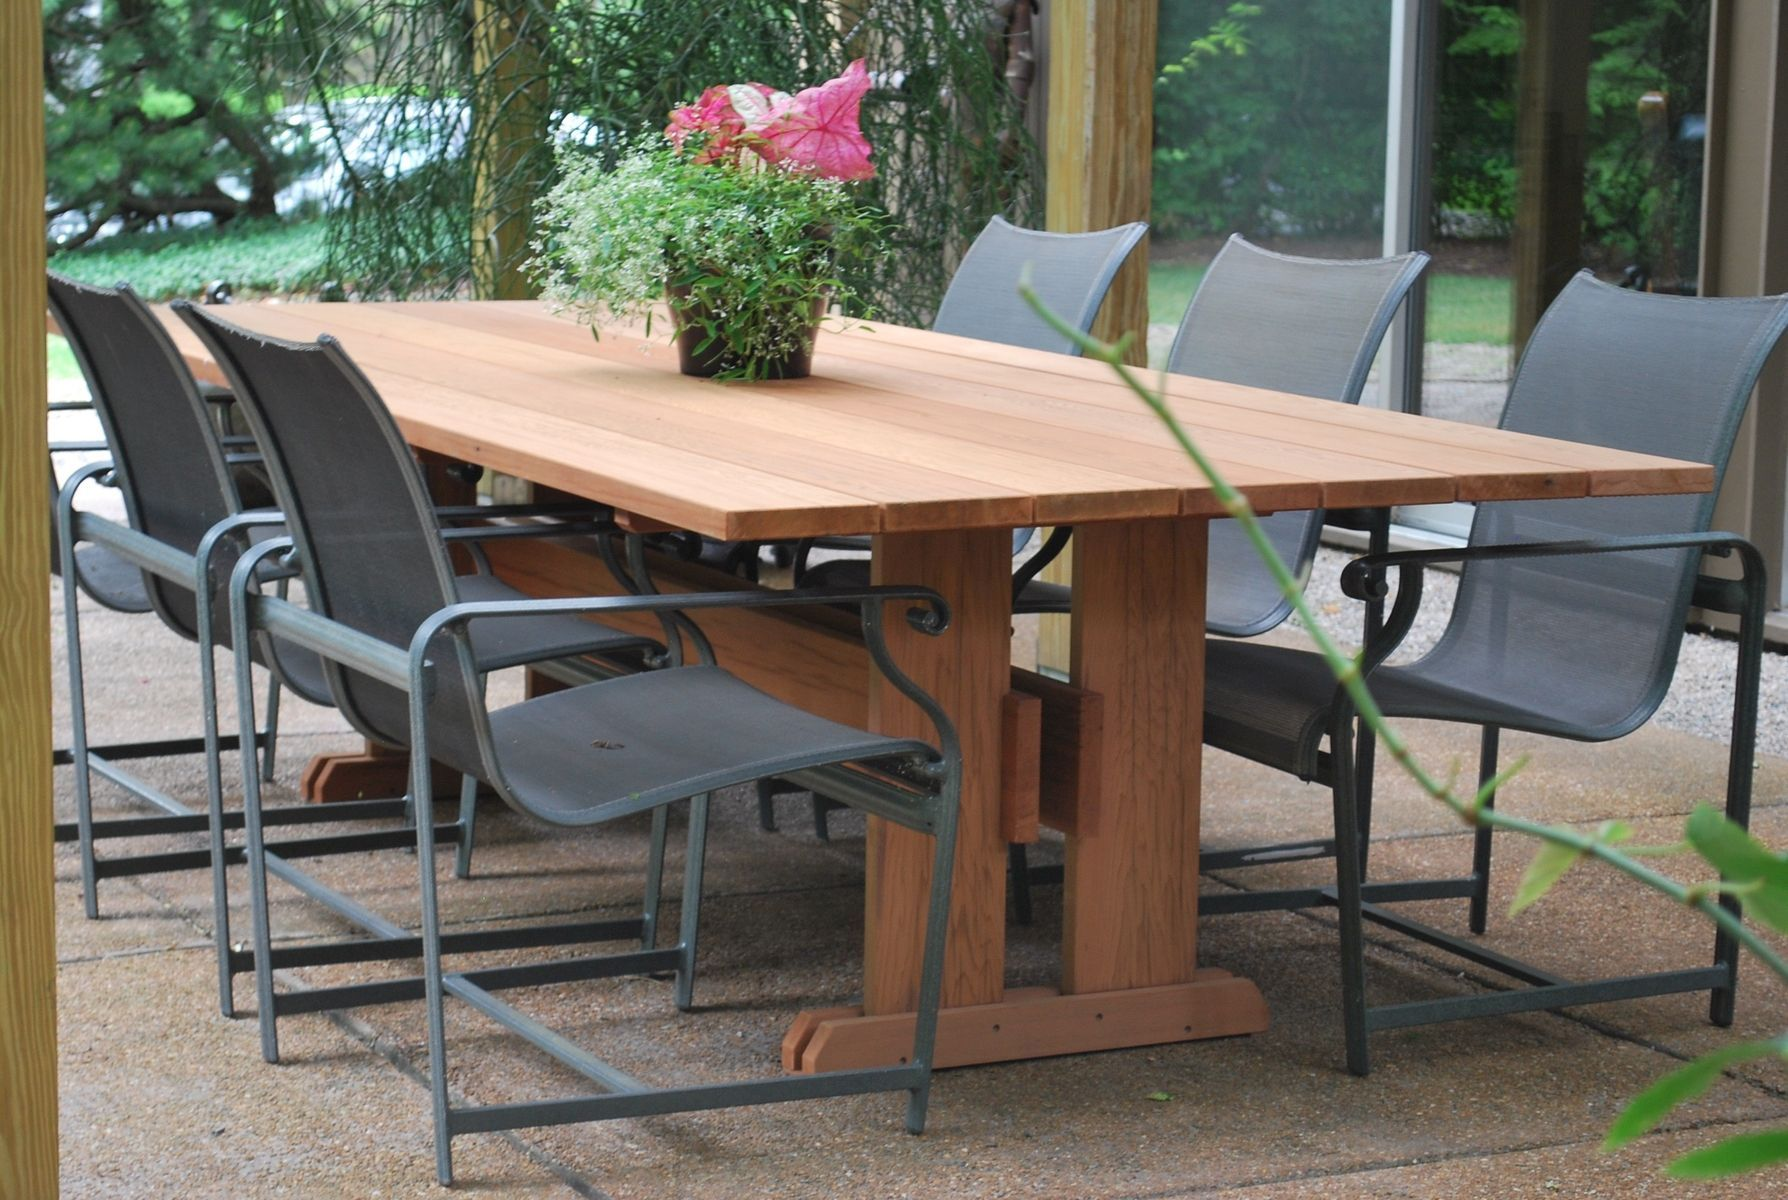 Excitingpatiofurnituredesignwithbrownwoodenrectangledining - Outdoor wood rectangular dining table